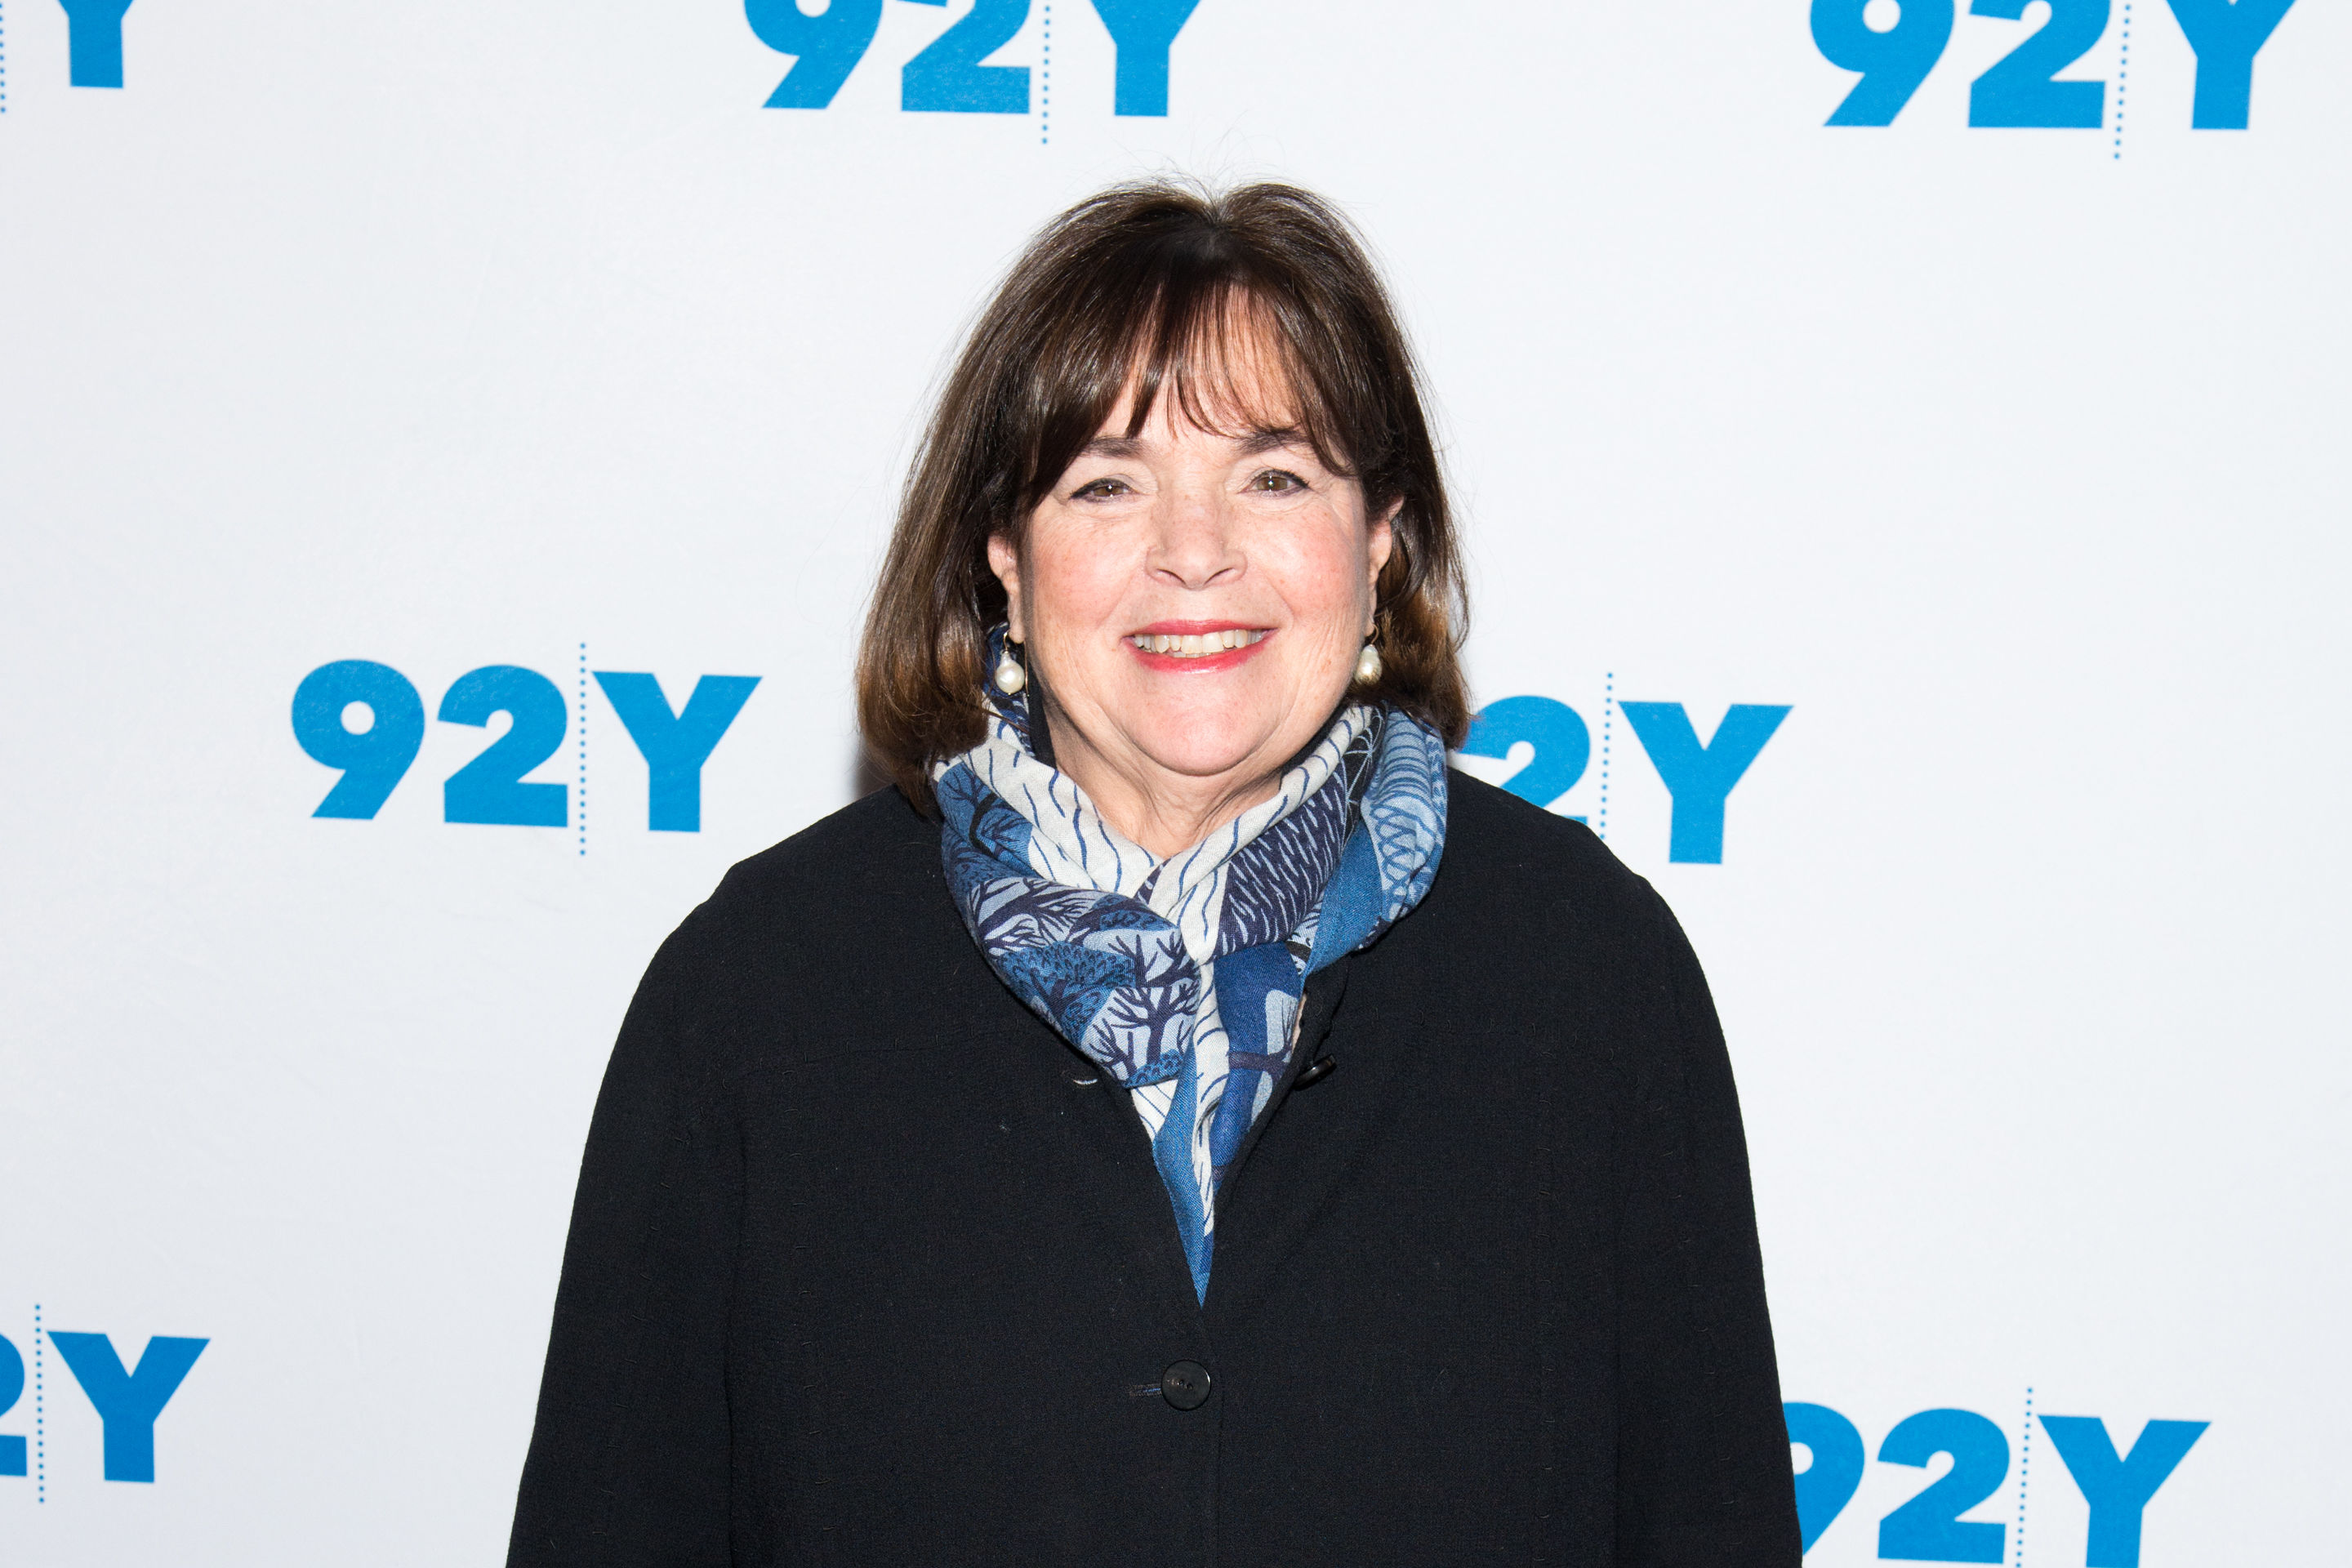 Ina Garten Reveals Her Three Favorite No-Effort Appetizers